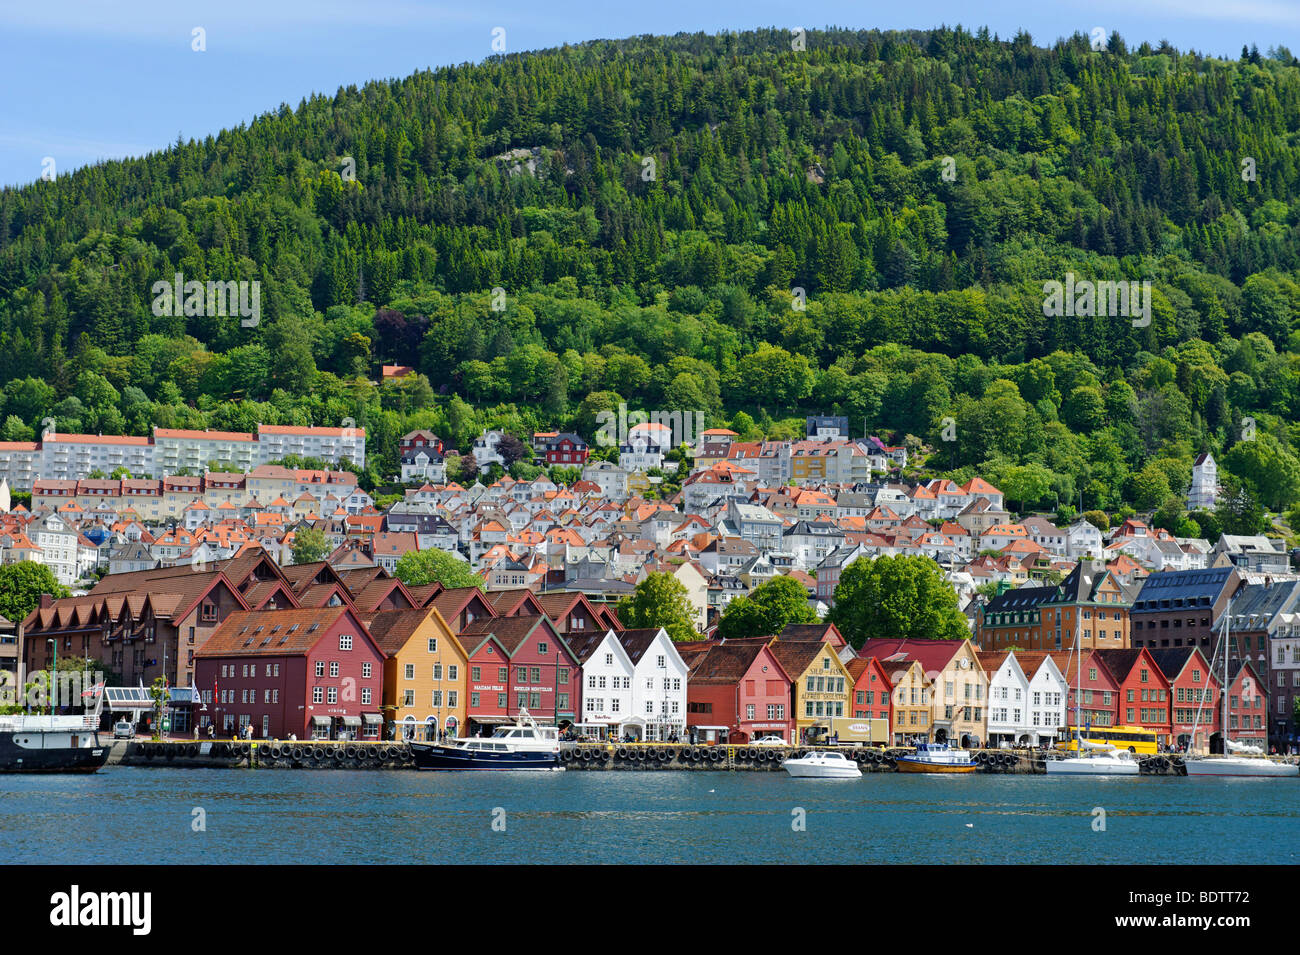 Hanseatic quarter, Bryggen, Bergen, Norway, Europe - Stock Image